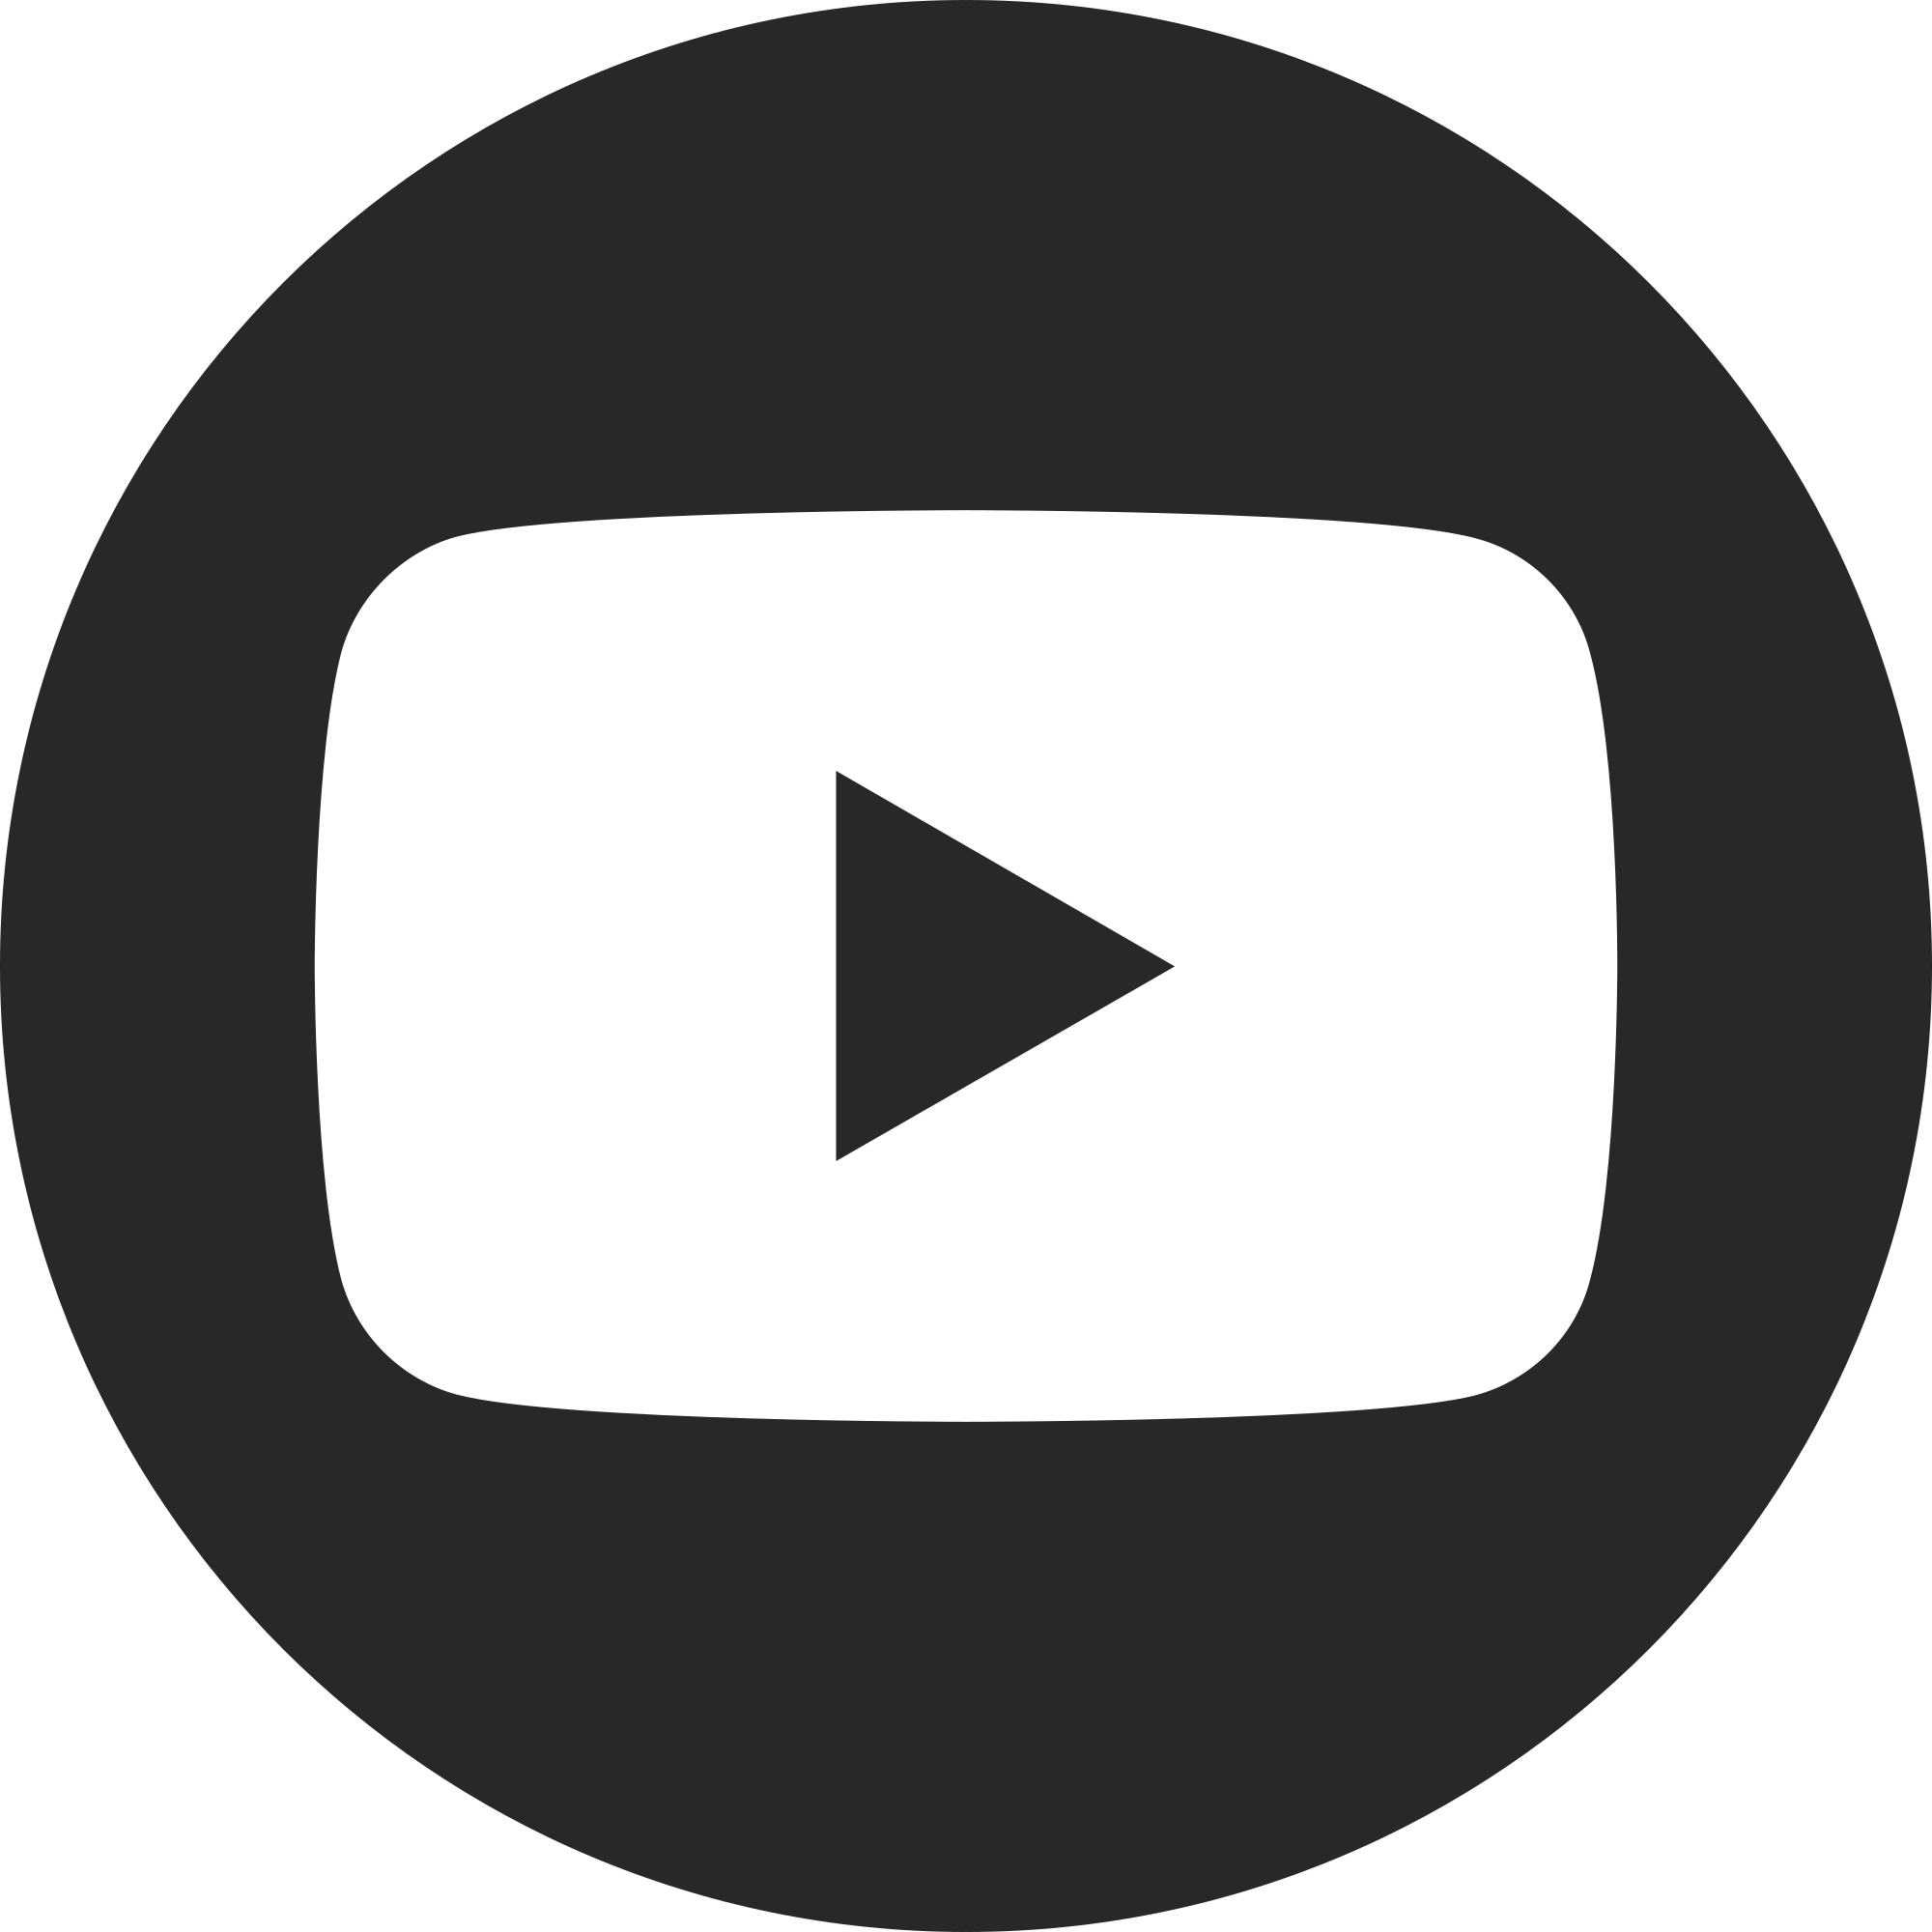 Youtube logo png white. File social dark circle